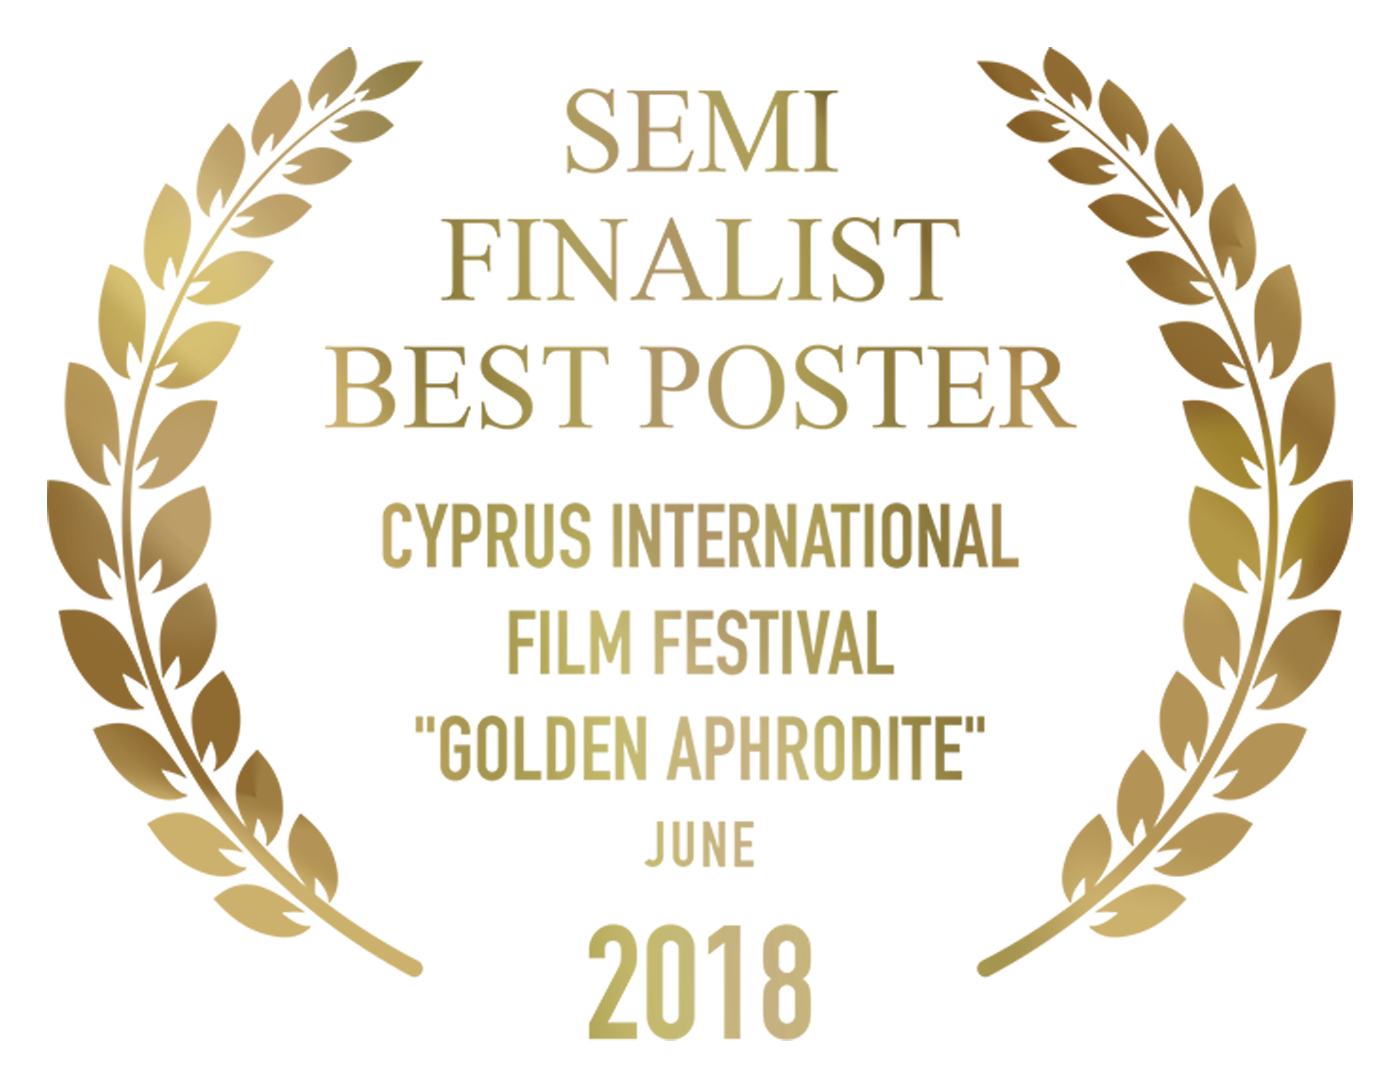 "Fragments Semi-Finalist Best Poster Cyprus International Film Festival ""Golden Aphrodite"" June 2018 Design by Cesare Asaro"